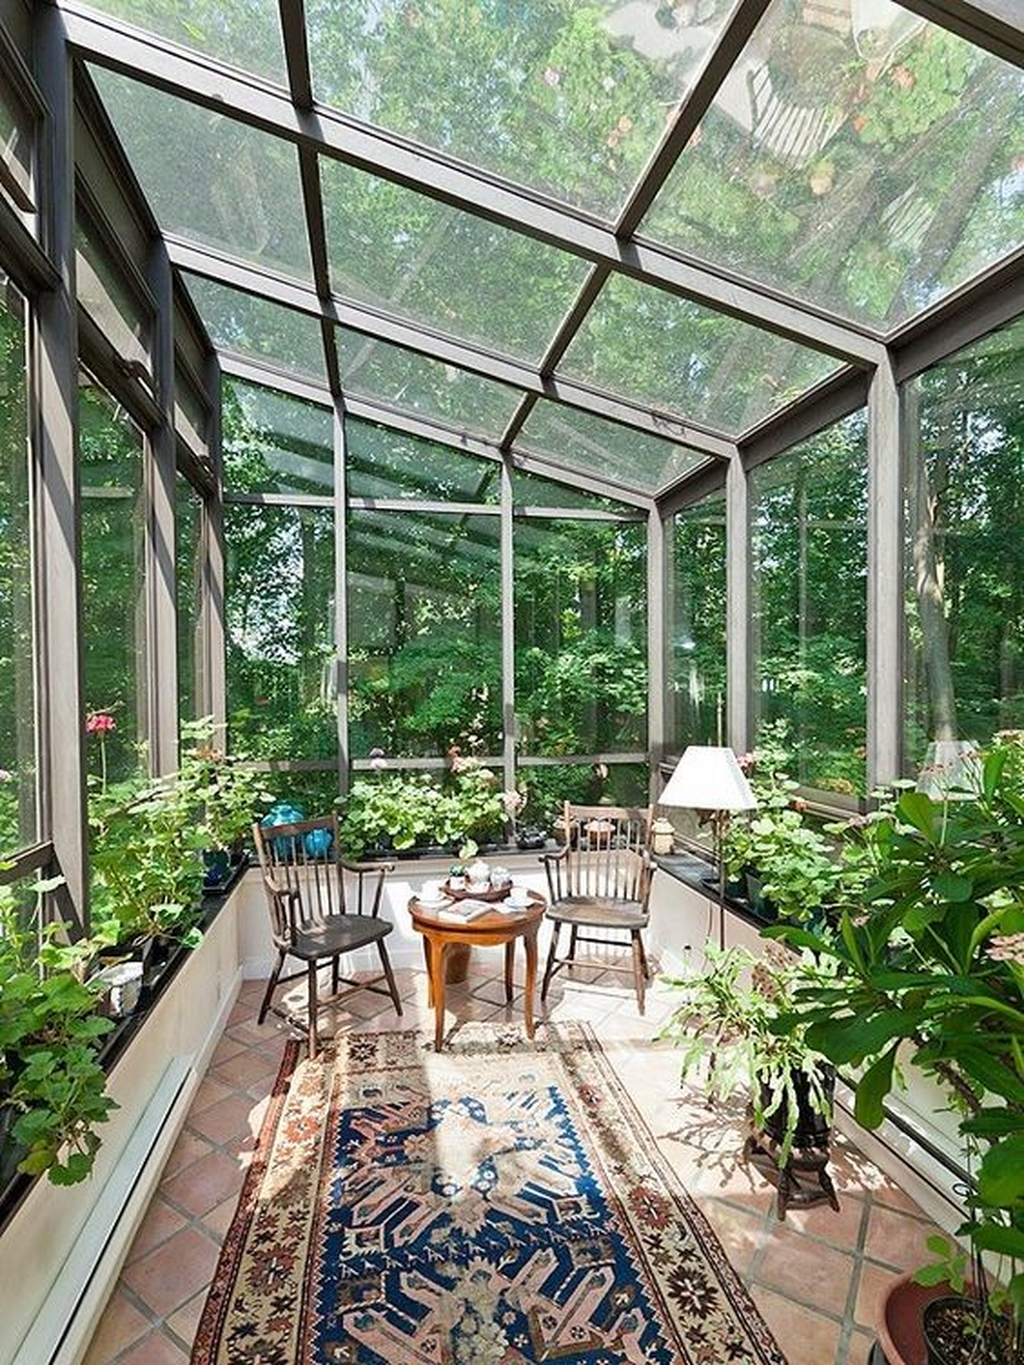 Admirable Sunroom Design Ideas You Must Have 20